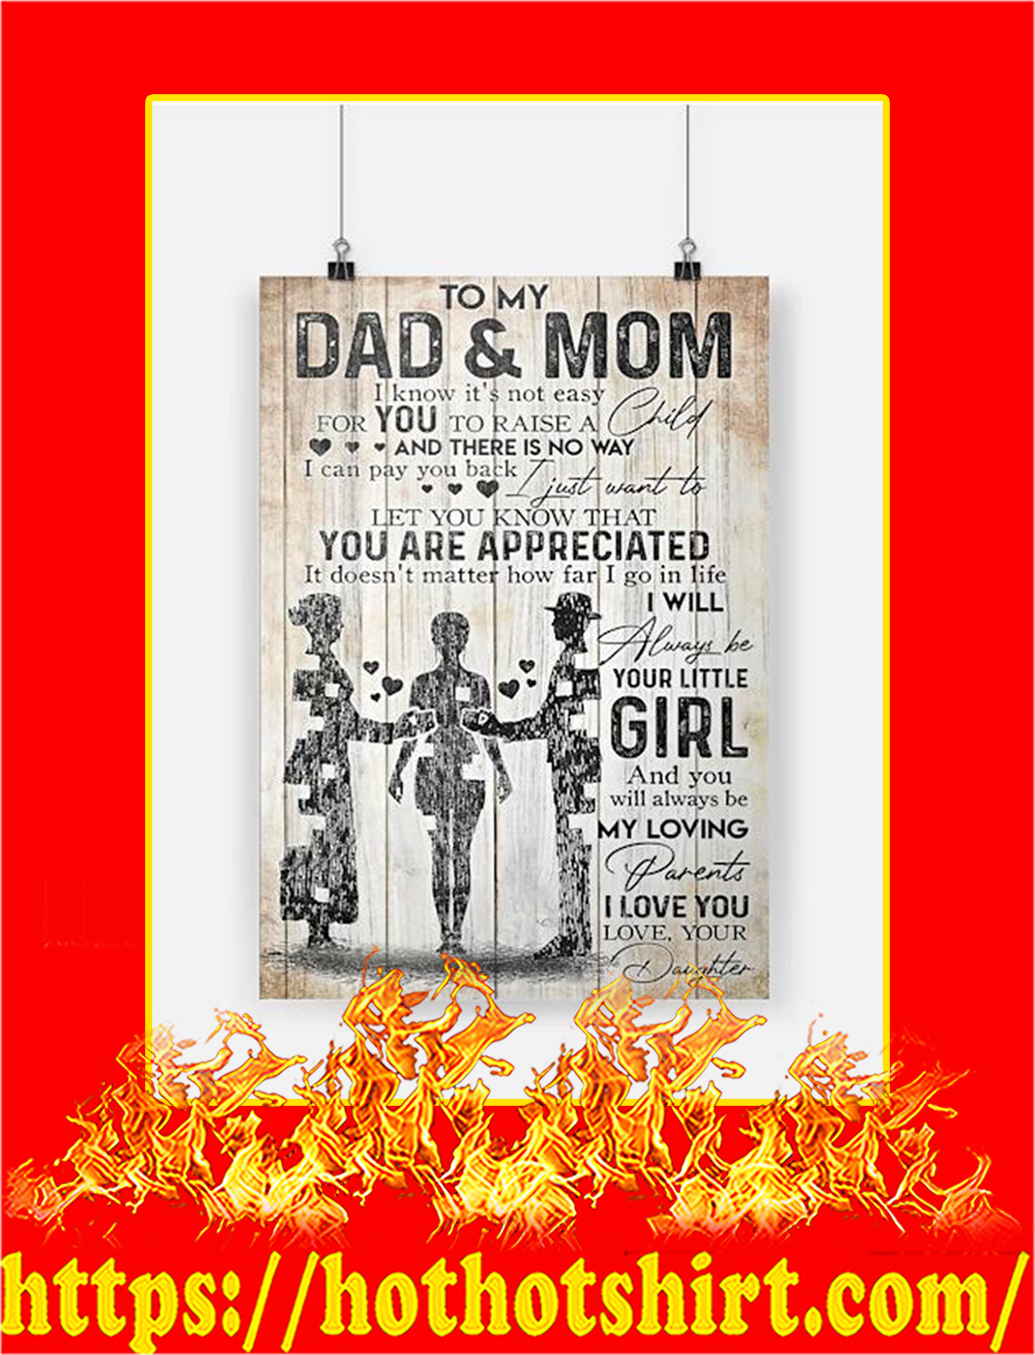 To My Dad And Mom Daughter Poster - A3